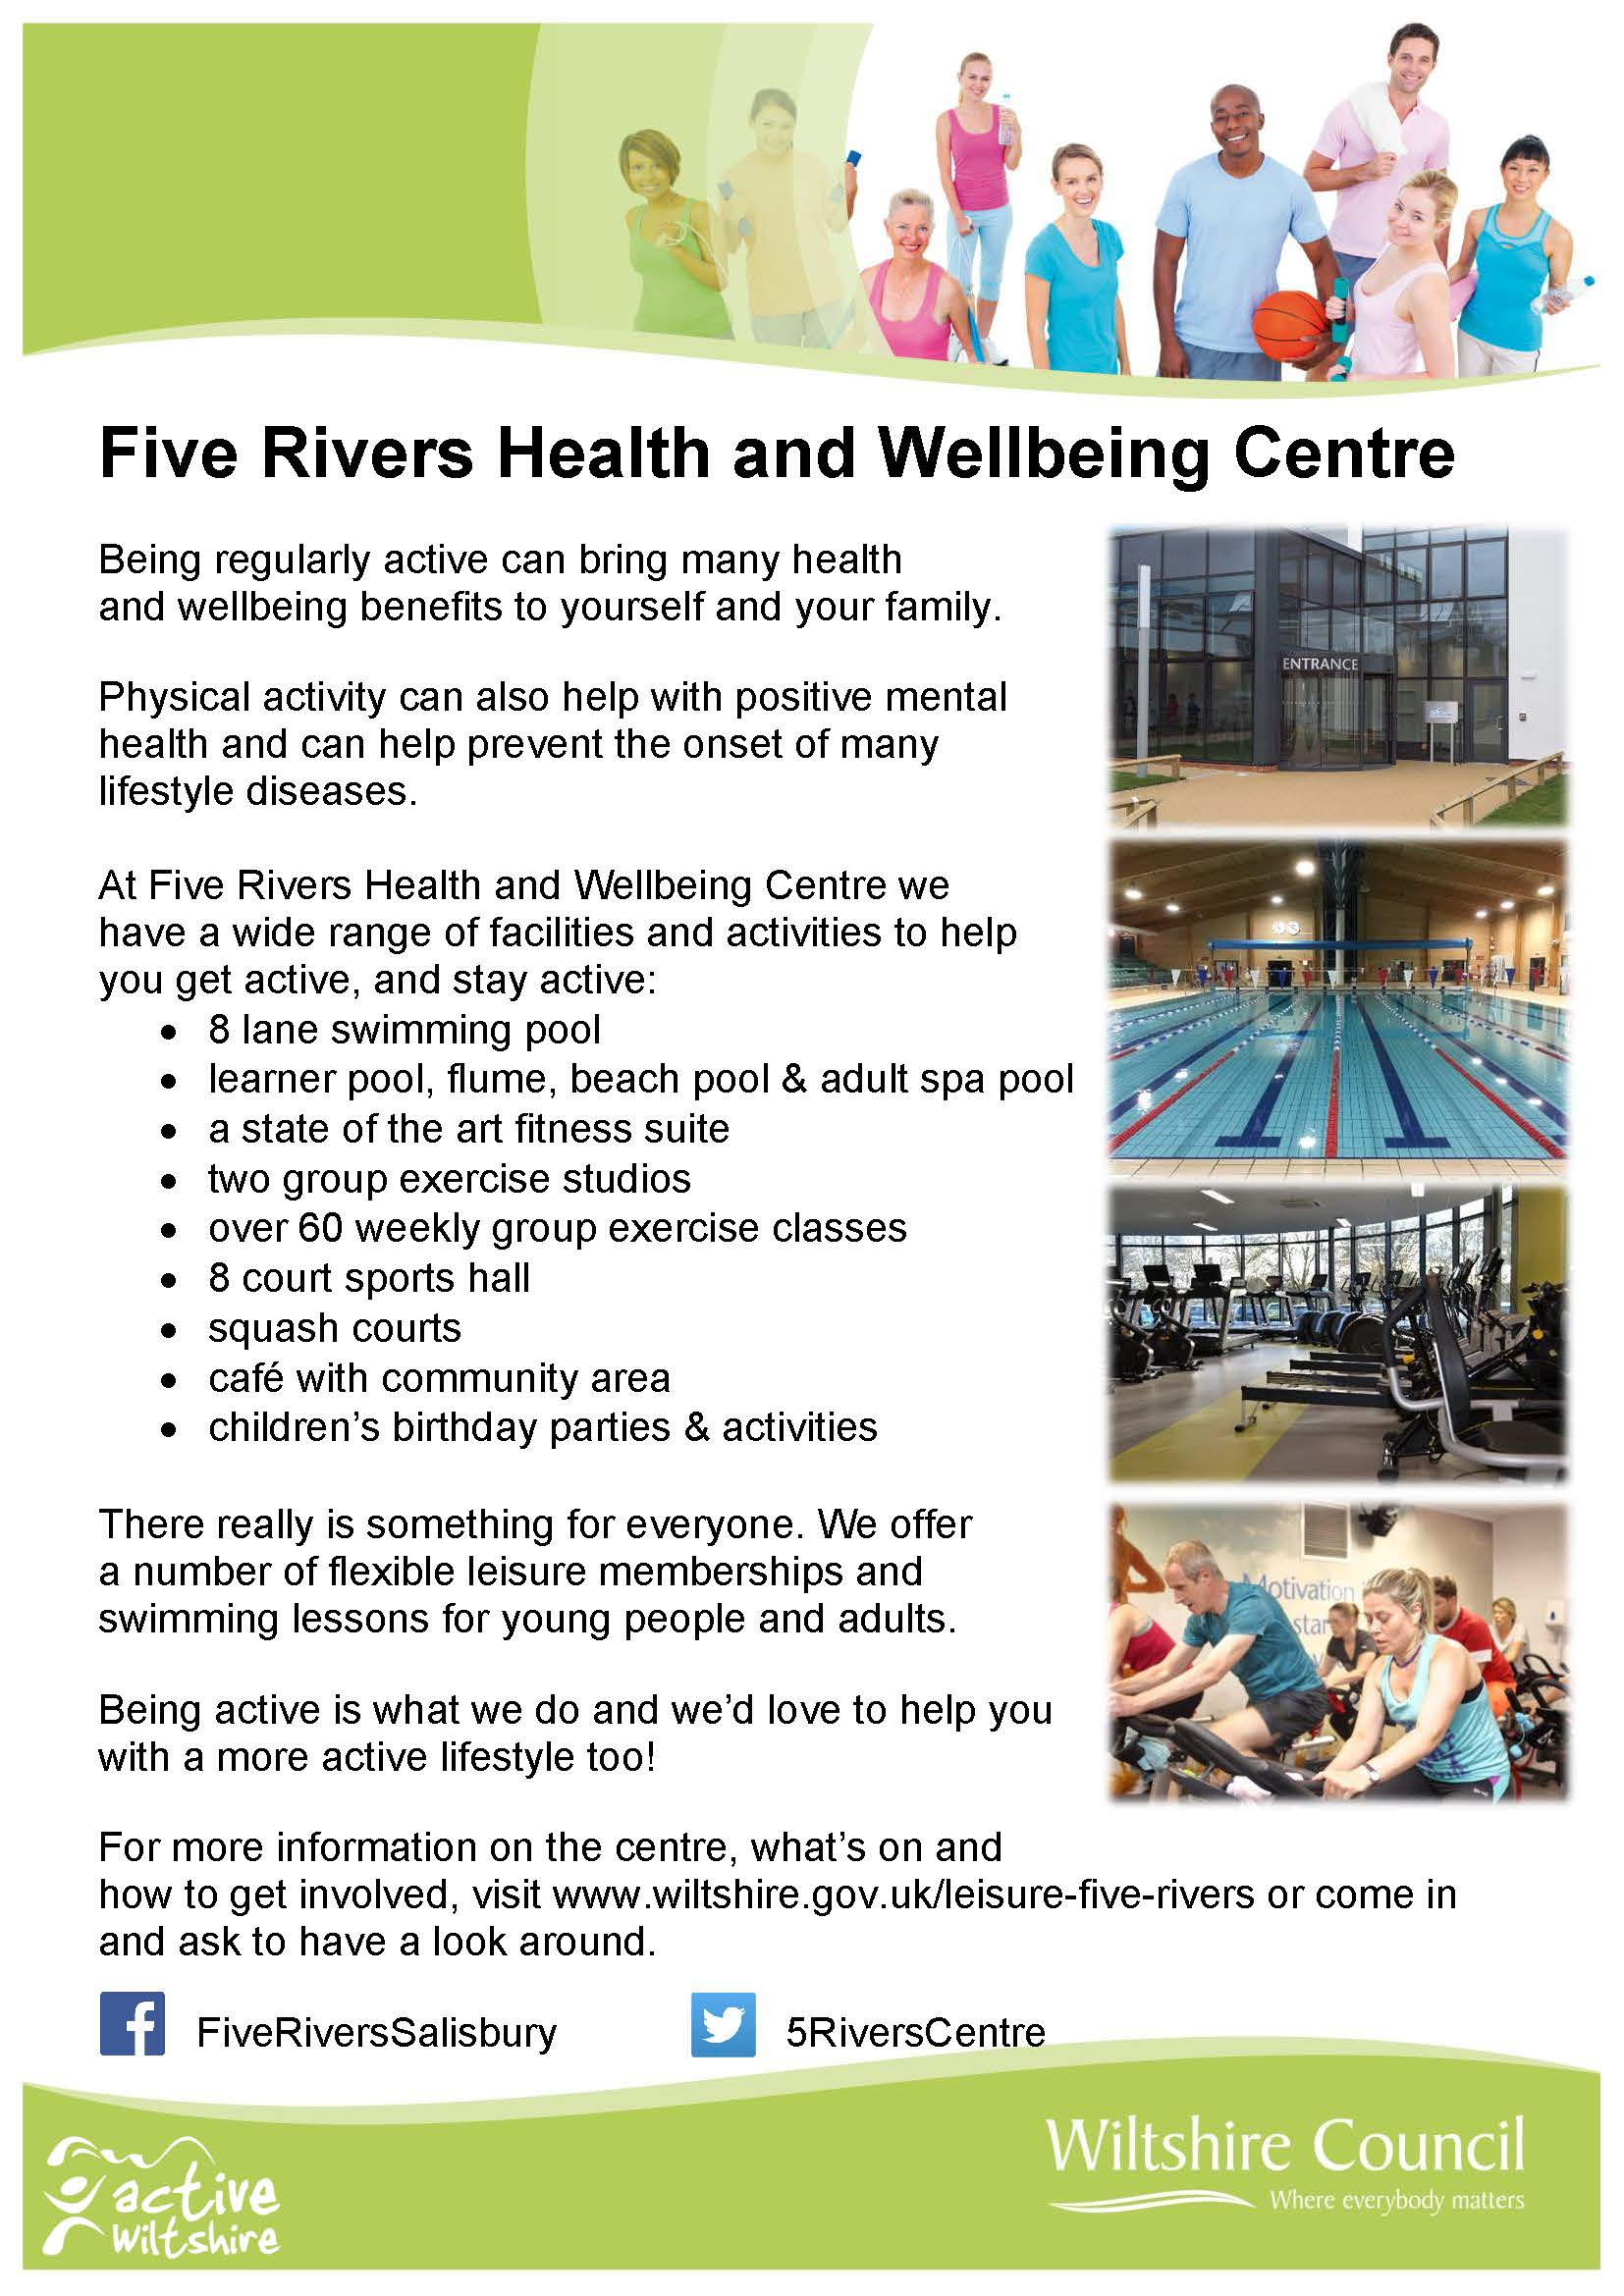 Berwick St James Parish Five Rivers Health and Wellbeing Centre